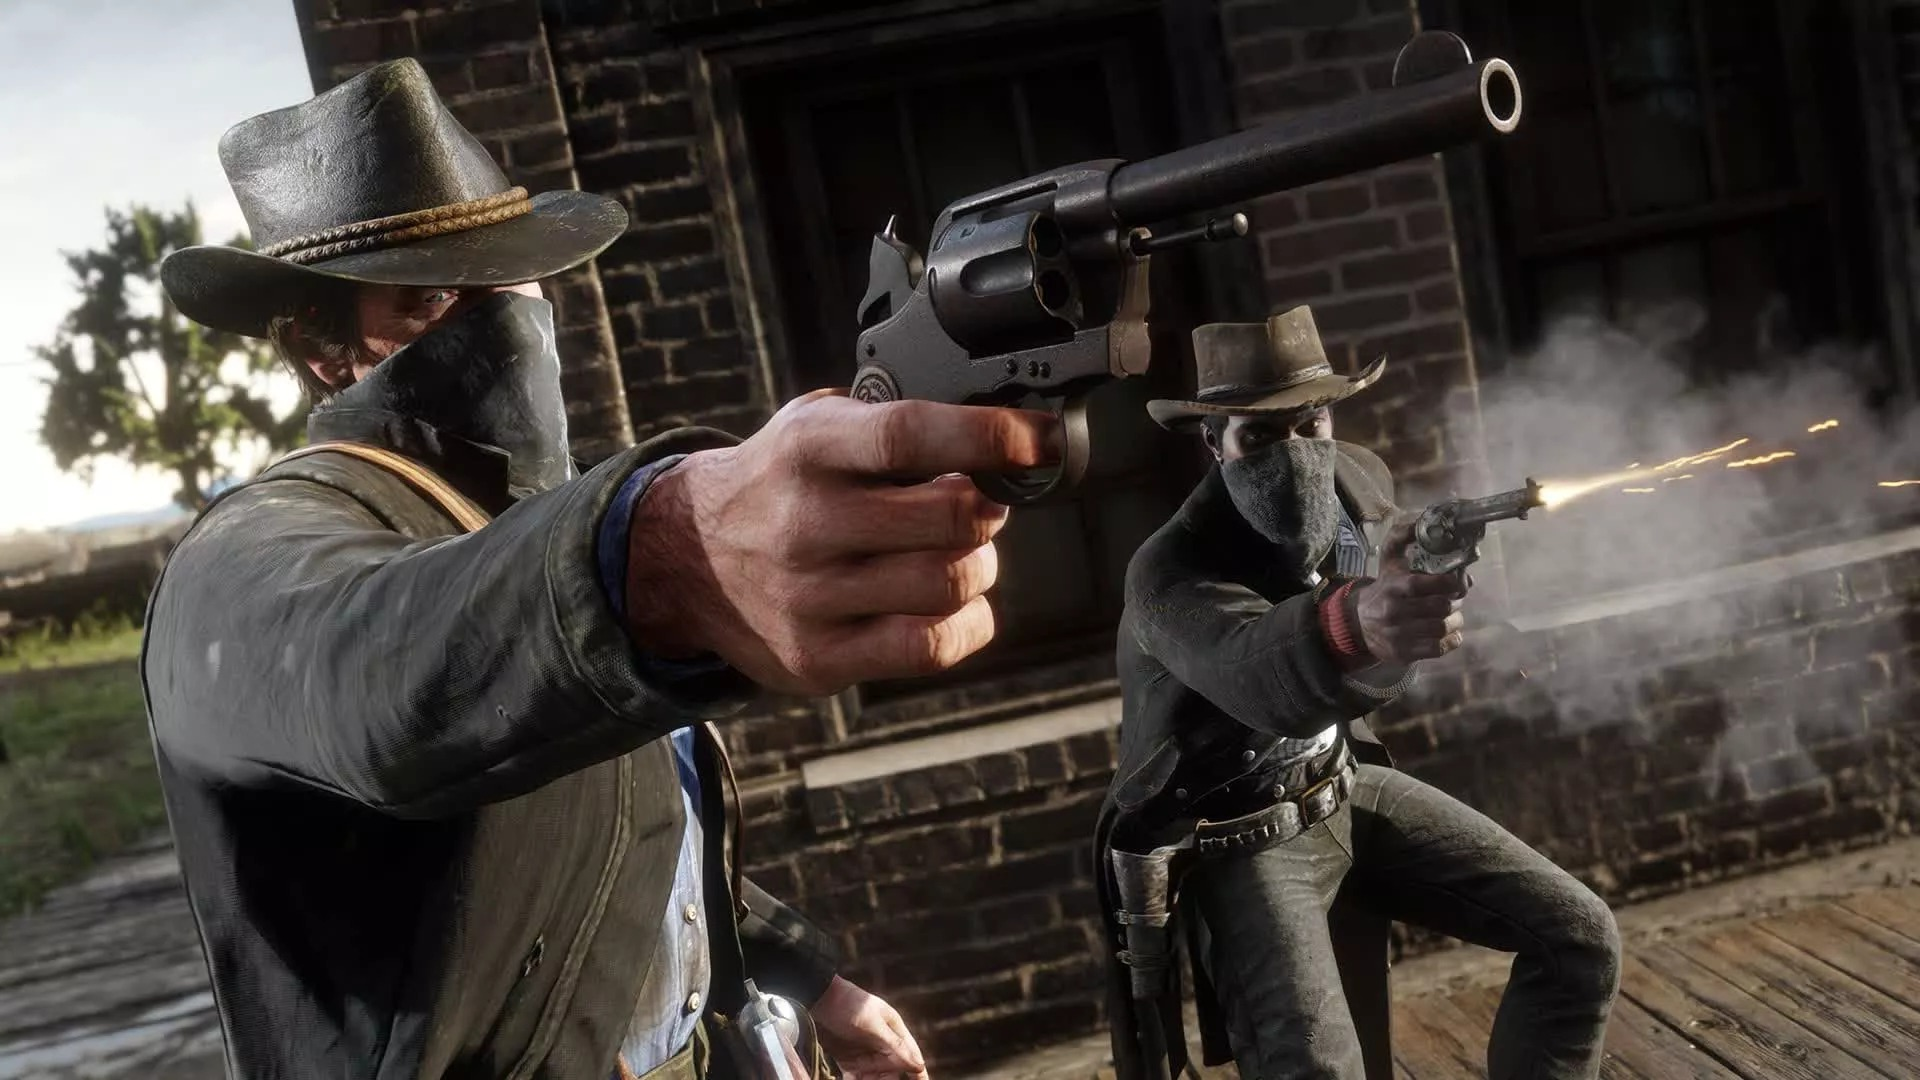 Red Dead Redemption 2 is now playable in VR thanks to this new fan mod